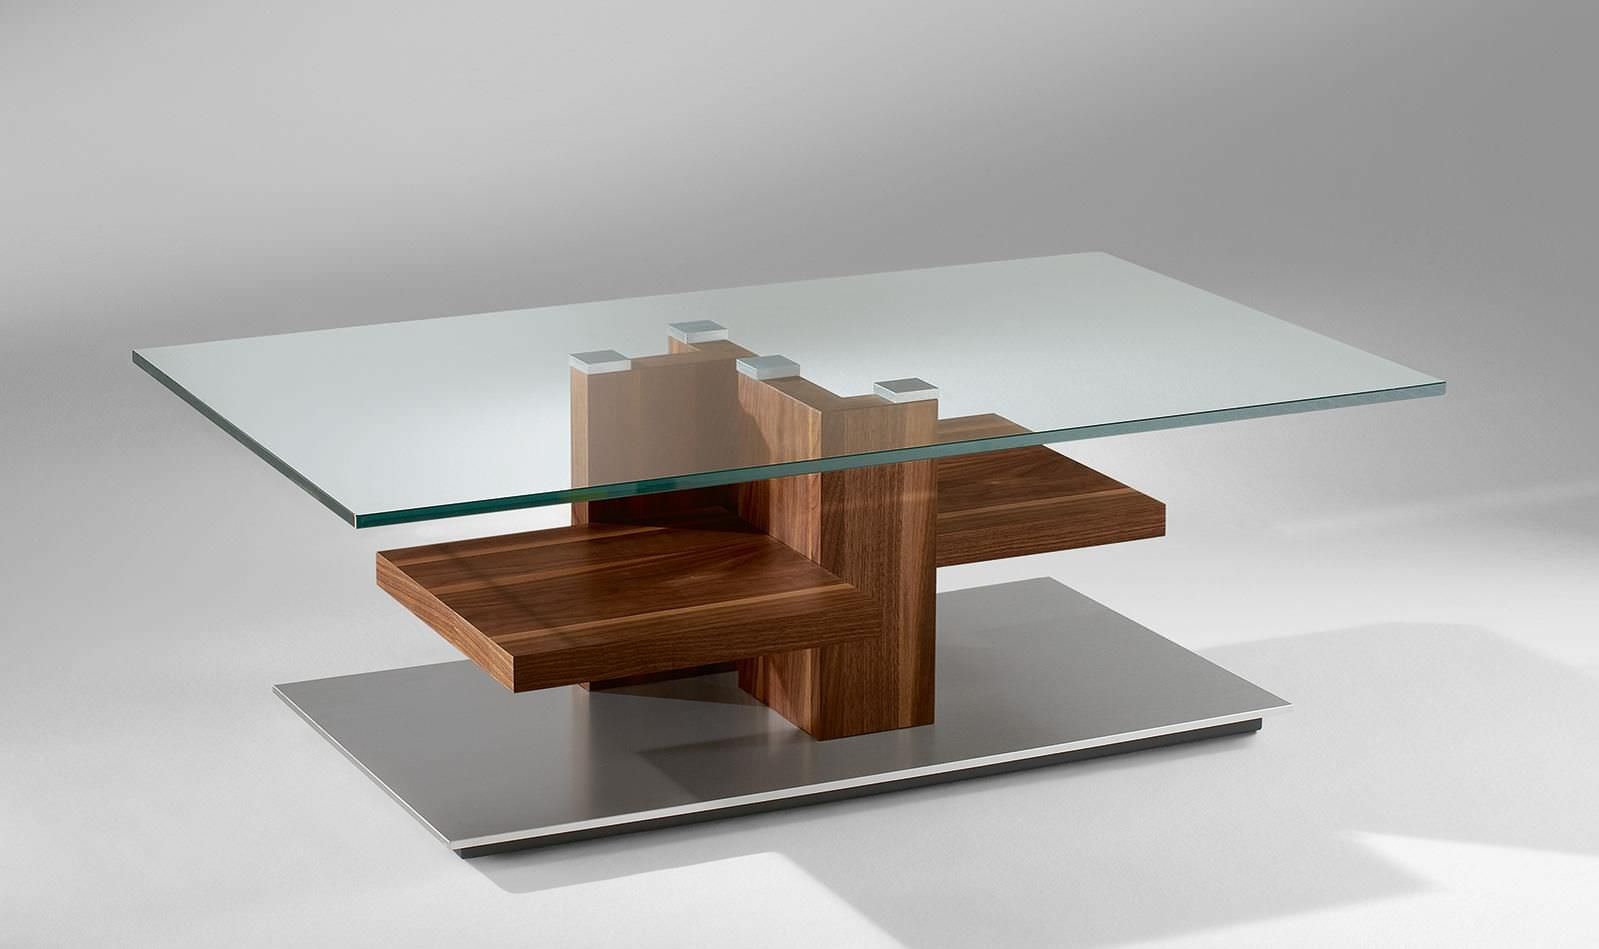 wood-and-glass-coffee-tables-coffee-table-contemporary-wood-glass-4424-alfons-venjakob-gmbh-co (Image 3 of 10)